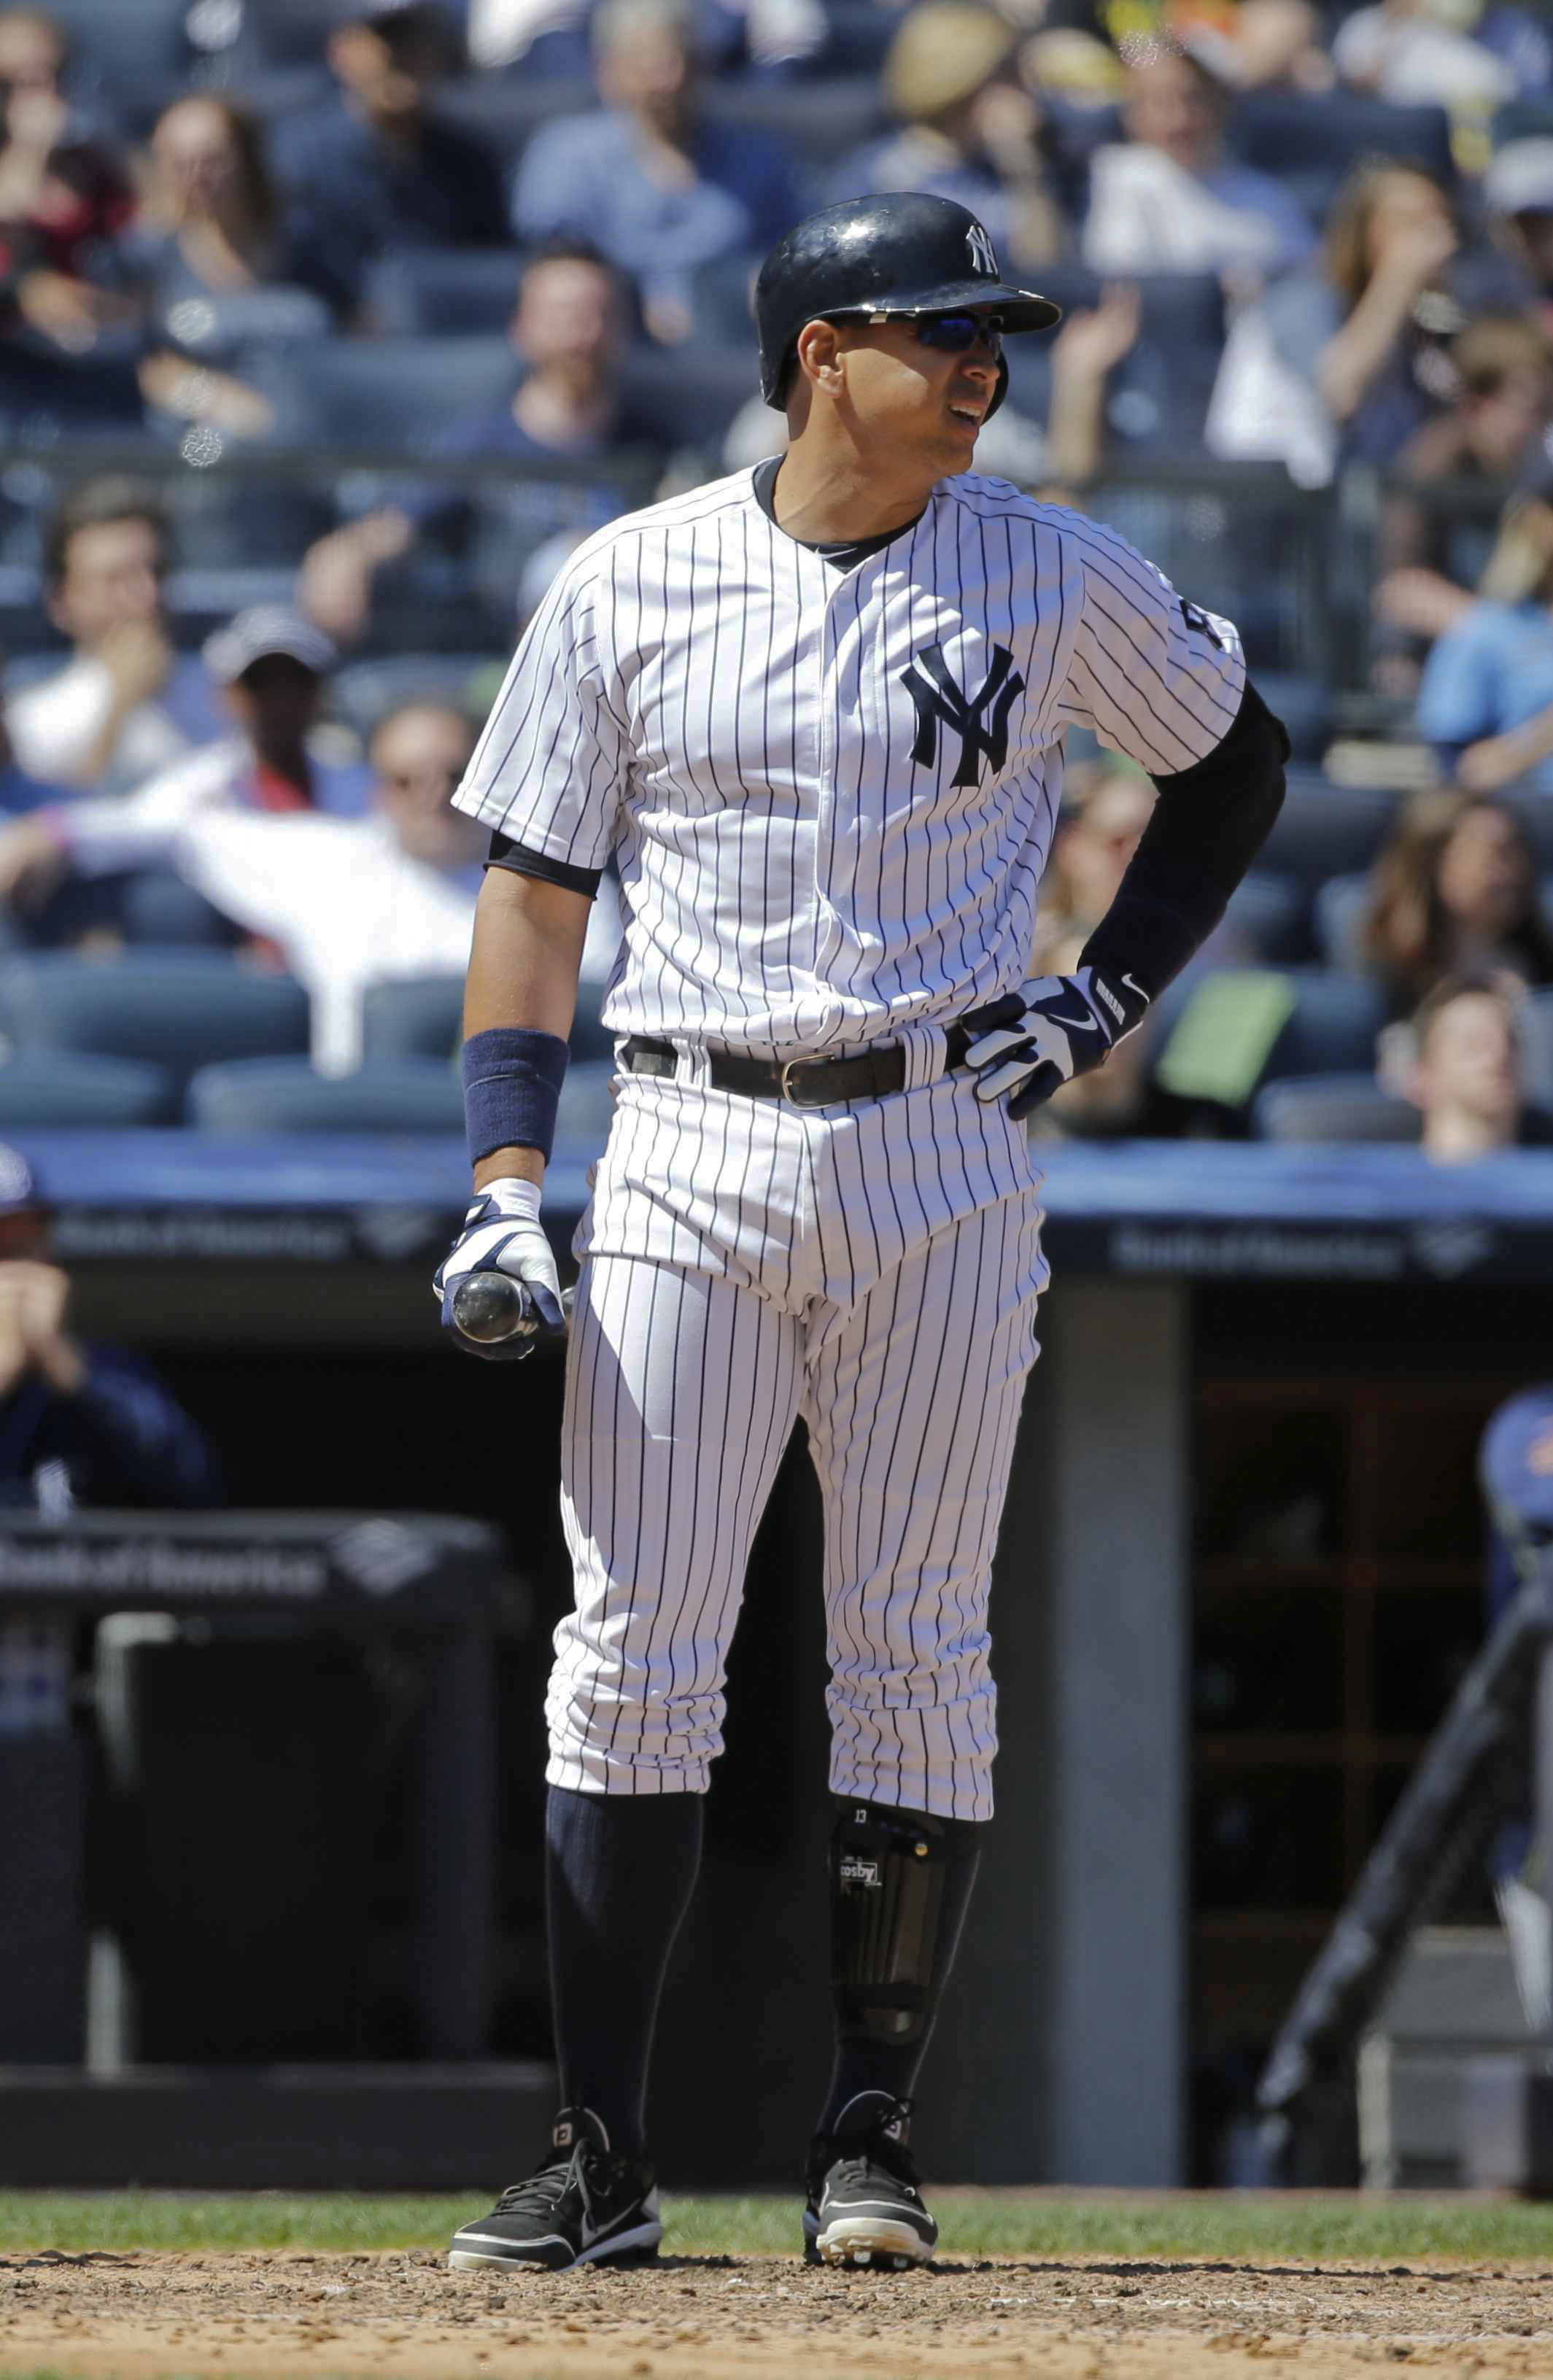 New York Yankees' Alex Rodriguez reacts after striking out during the fourth inning of a baseball game against the Tampa Bay Rays Saturday, April 23, 2016, in New York. (AP Photo/Frank Franklin II)